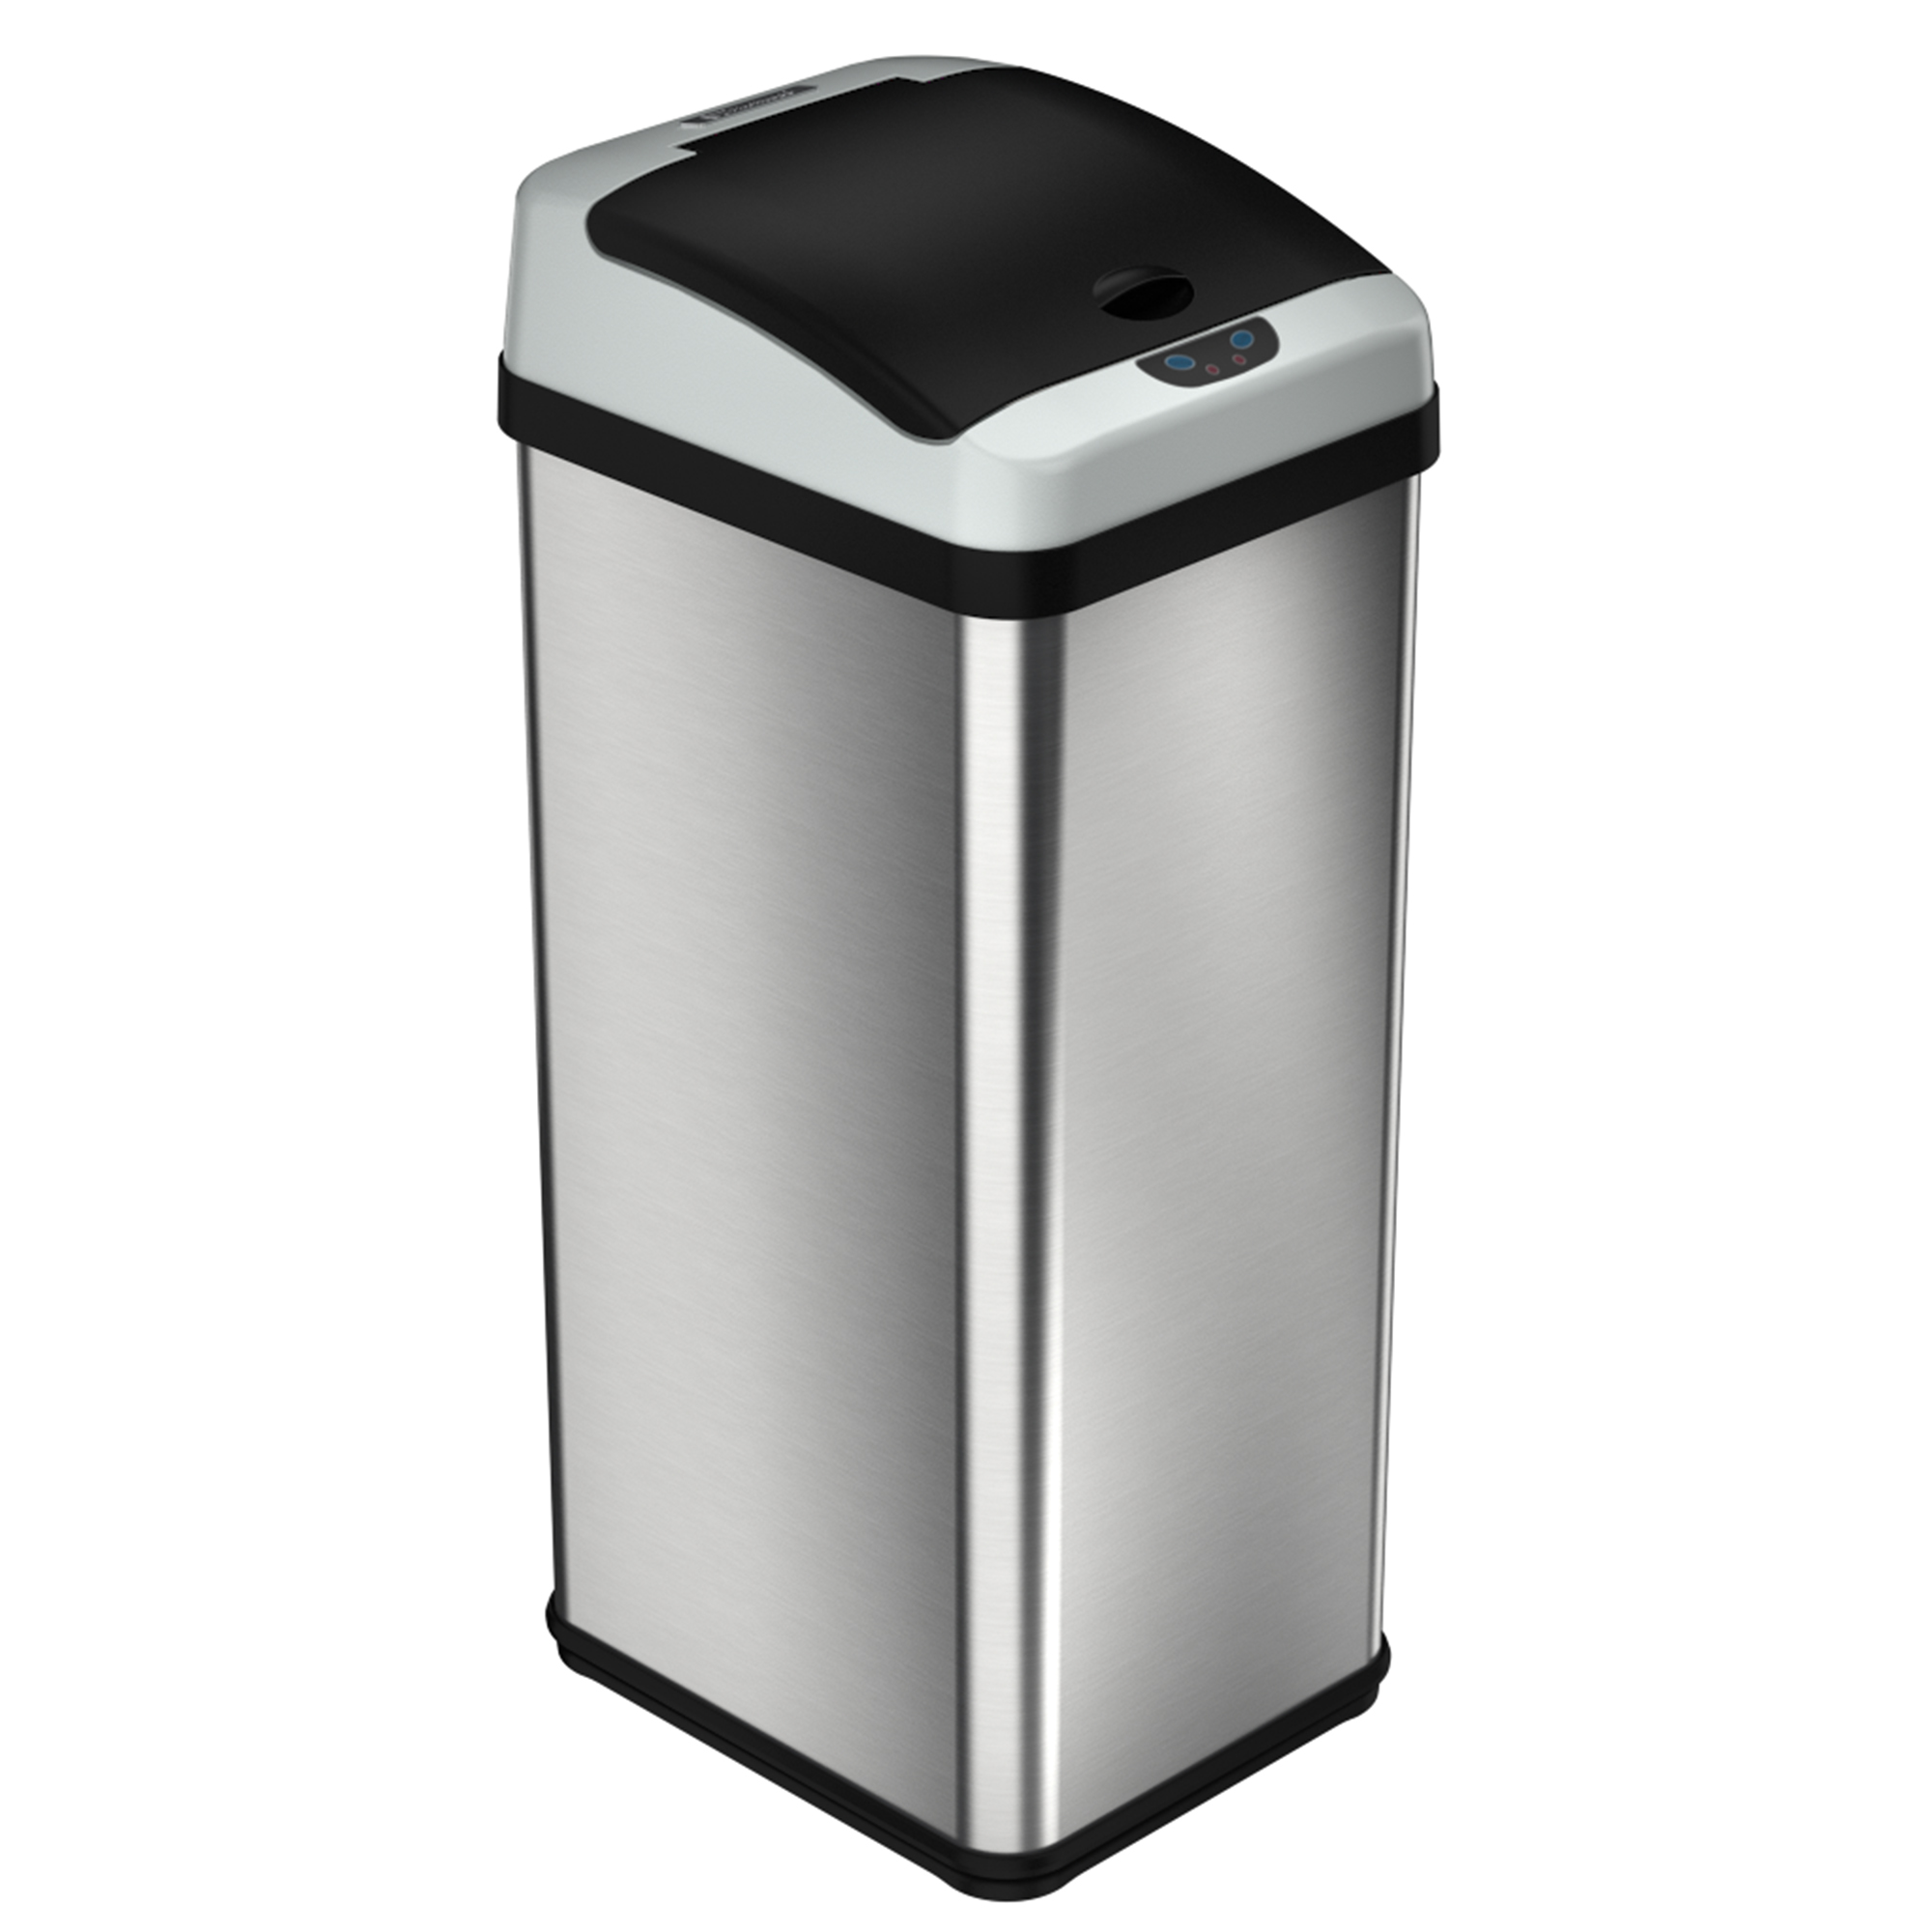 TOUCH FREE STAINLESS STEEL 13 GALLON TRASH CAN